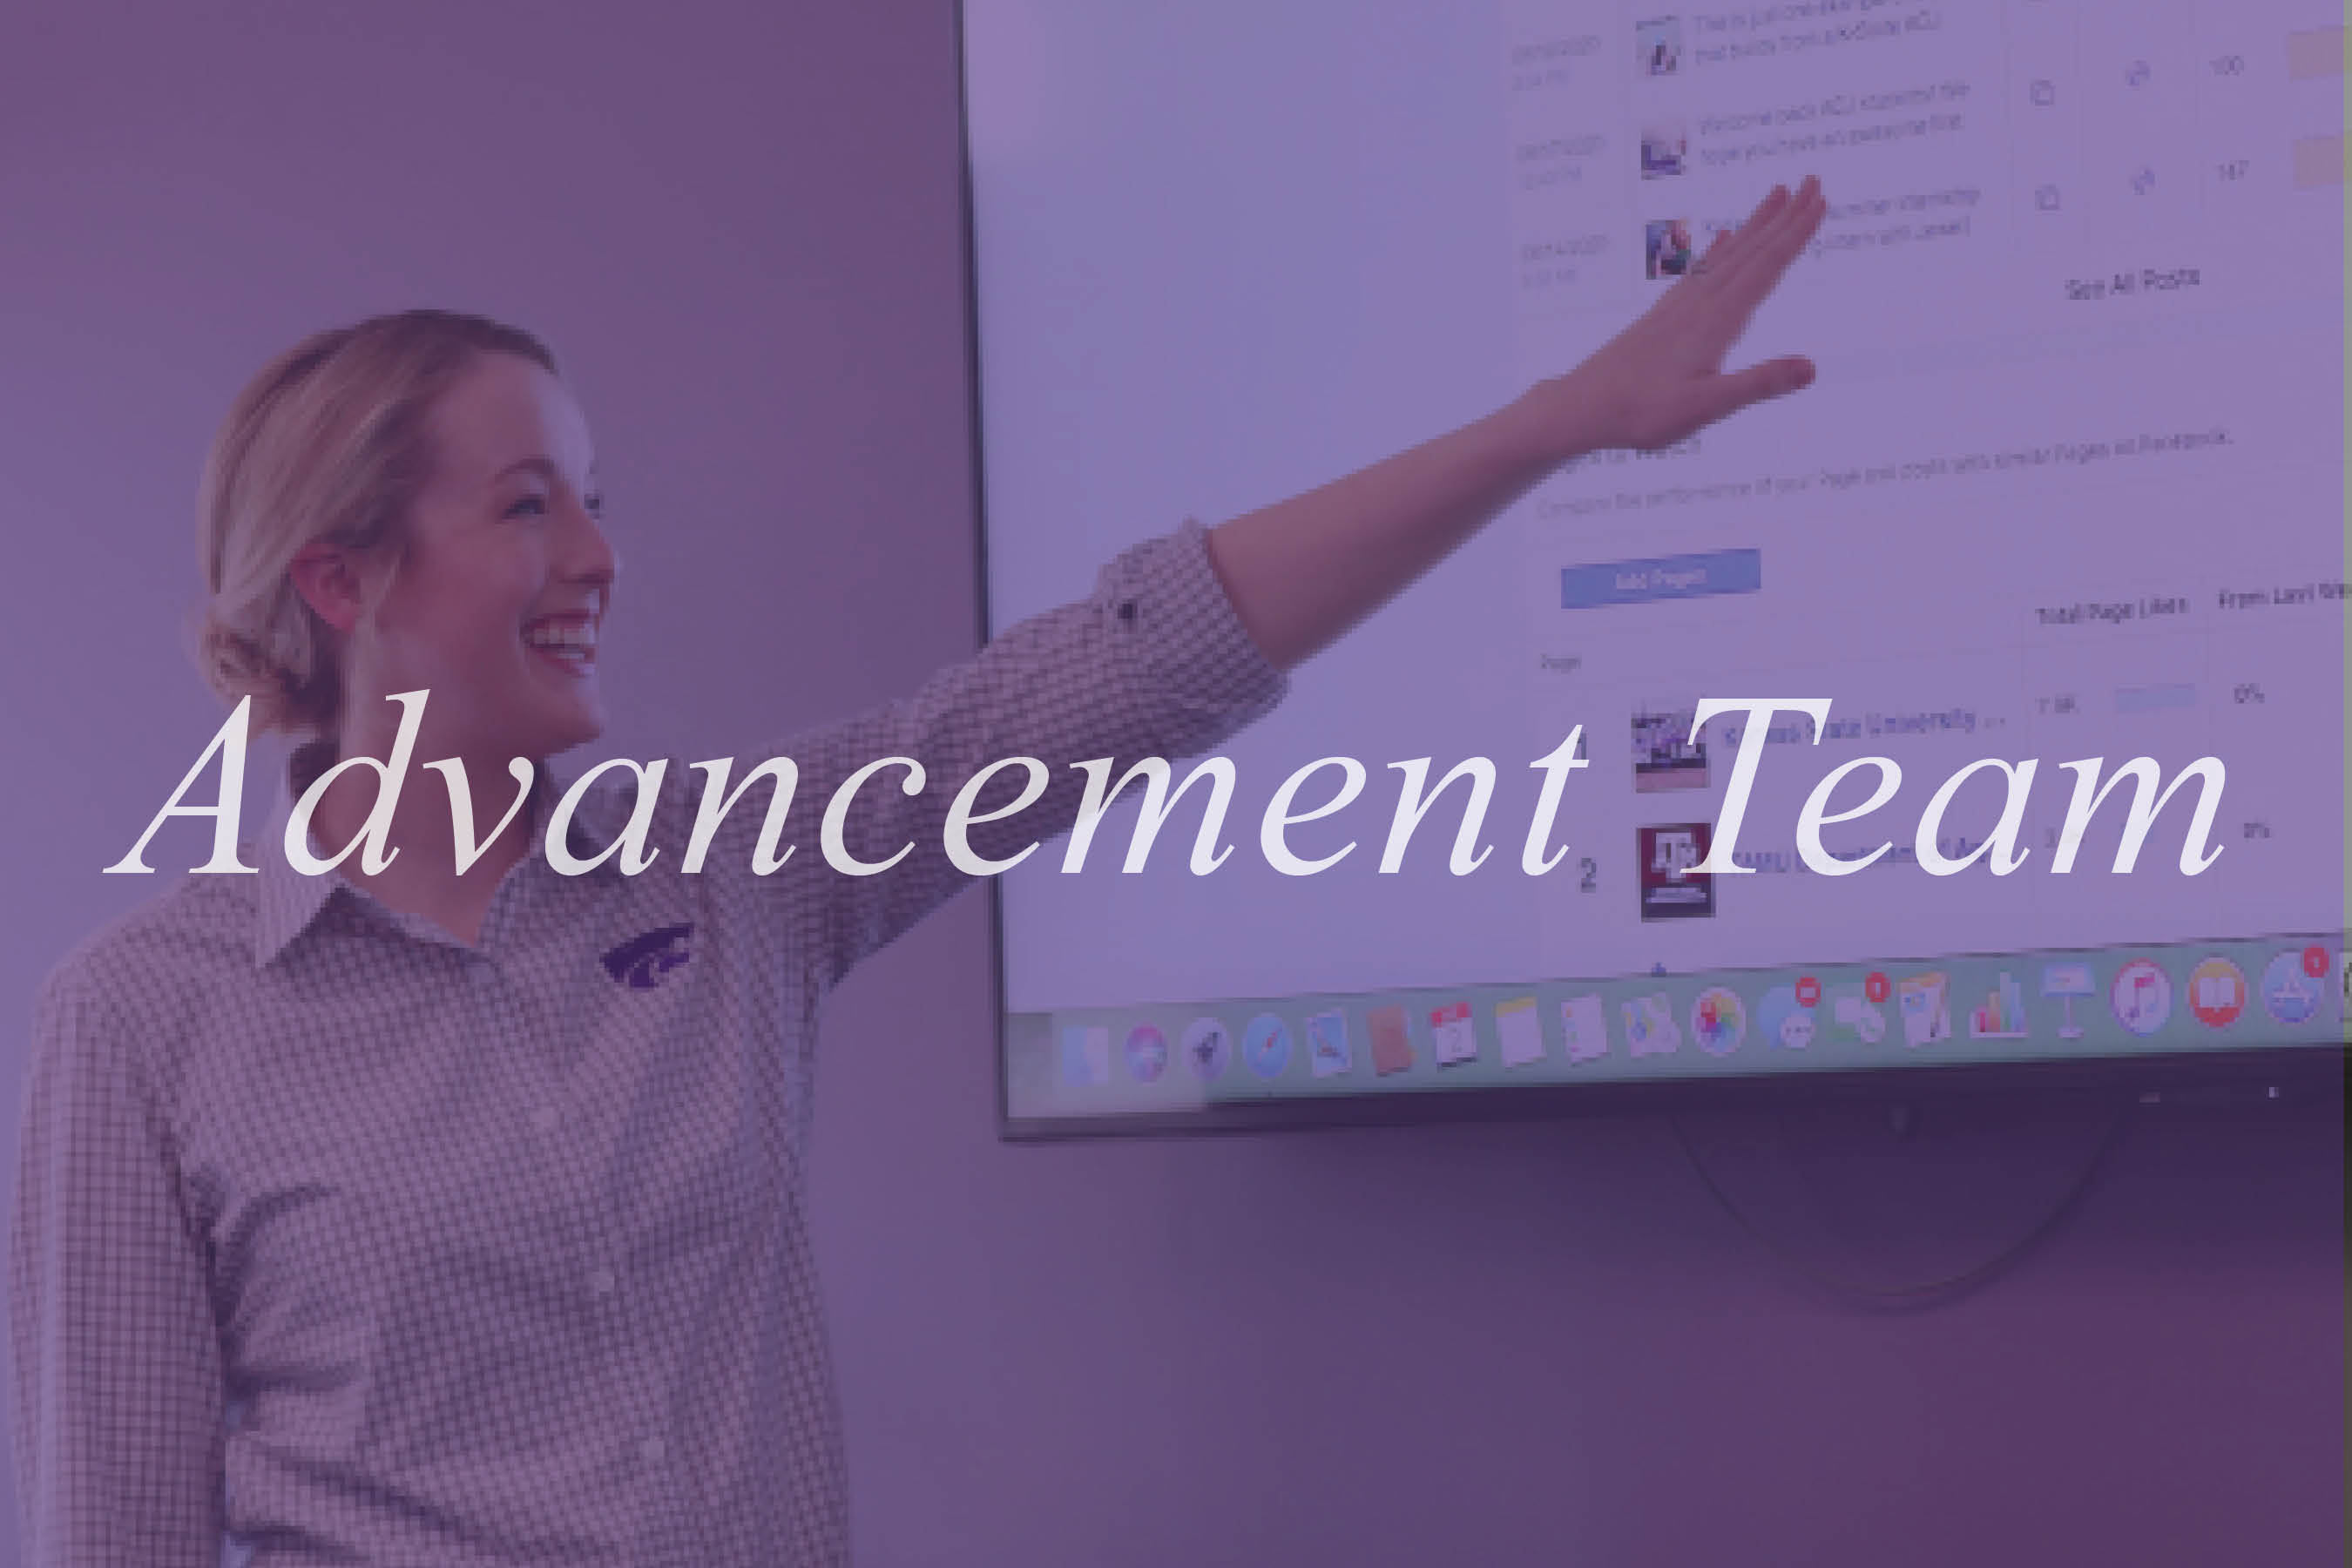 Advancement Team Image